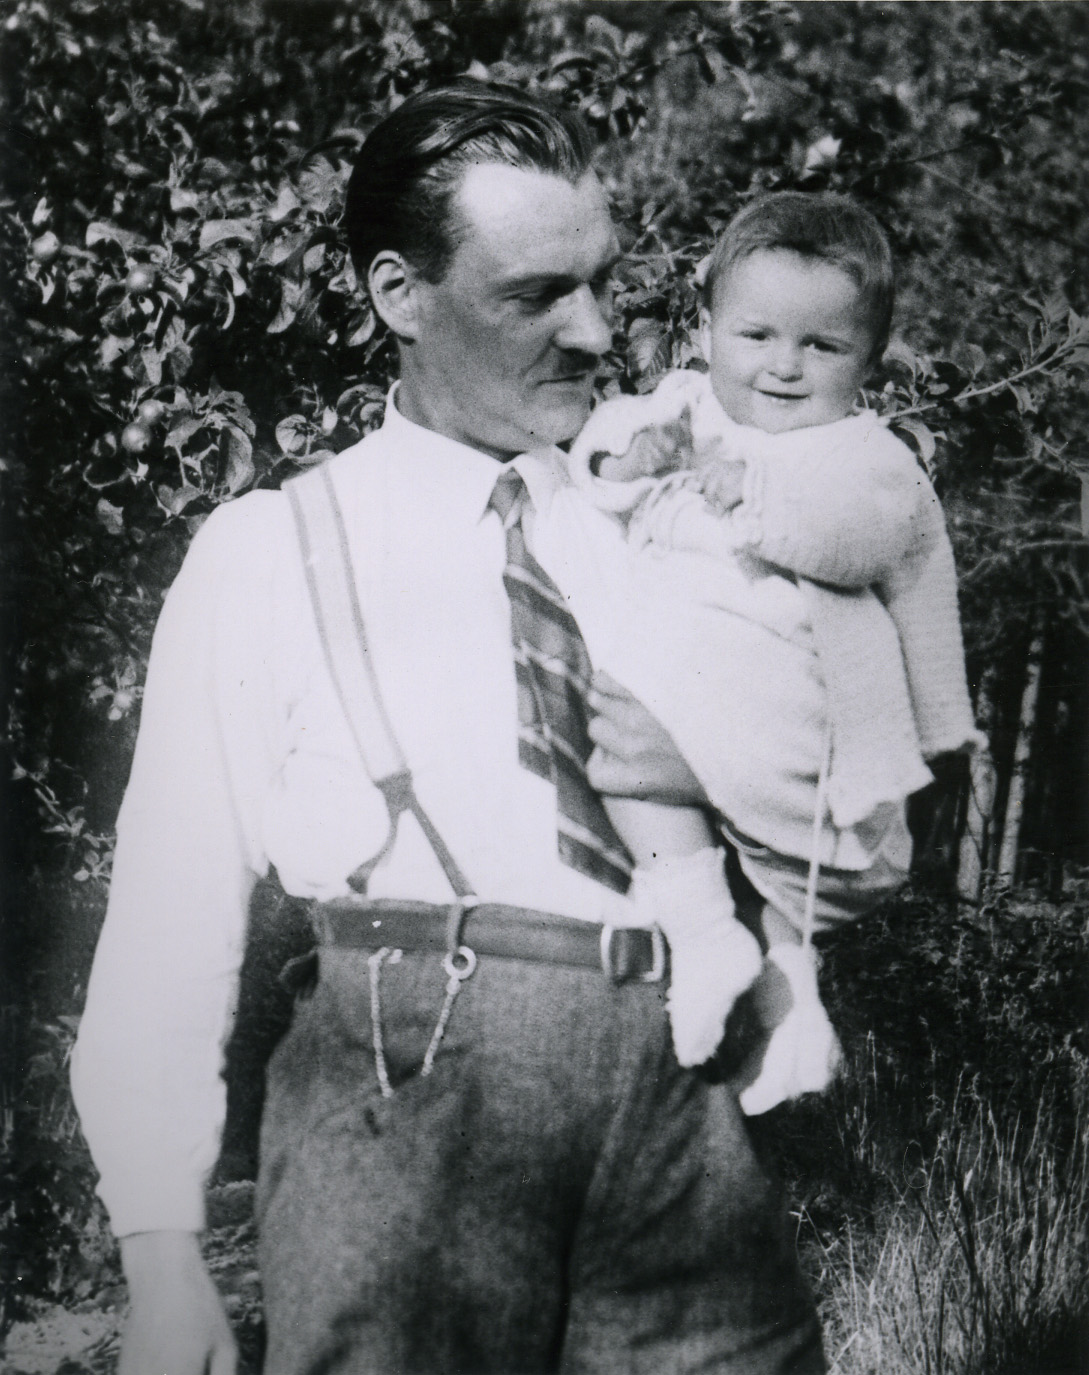 A man wearing a tie and suspenders holds a small girl.